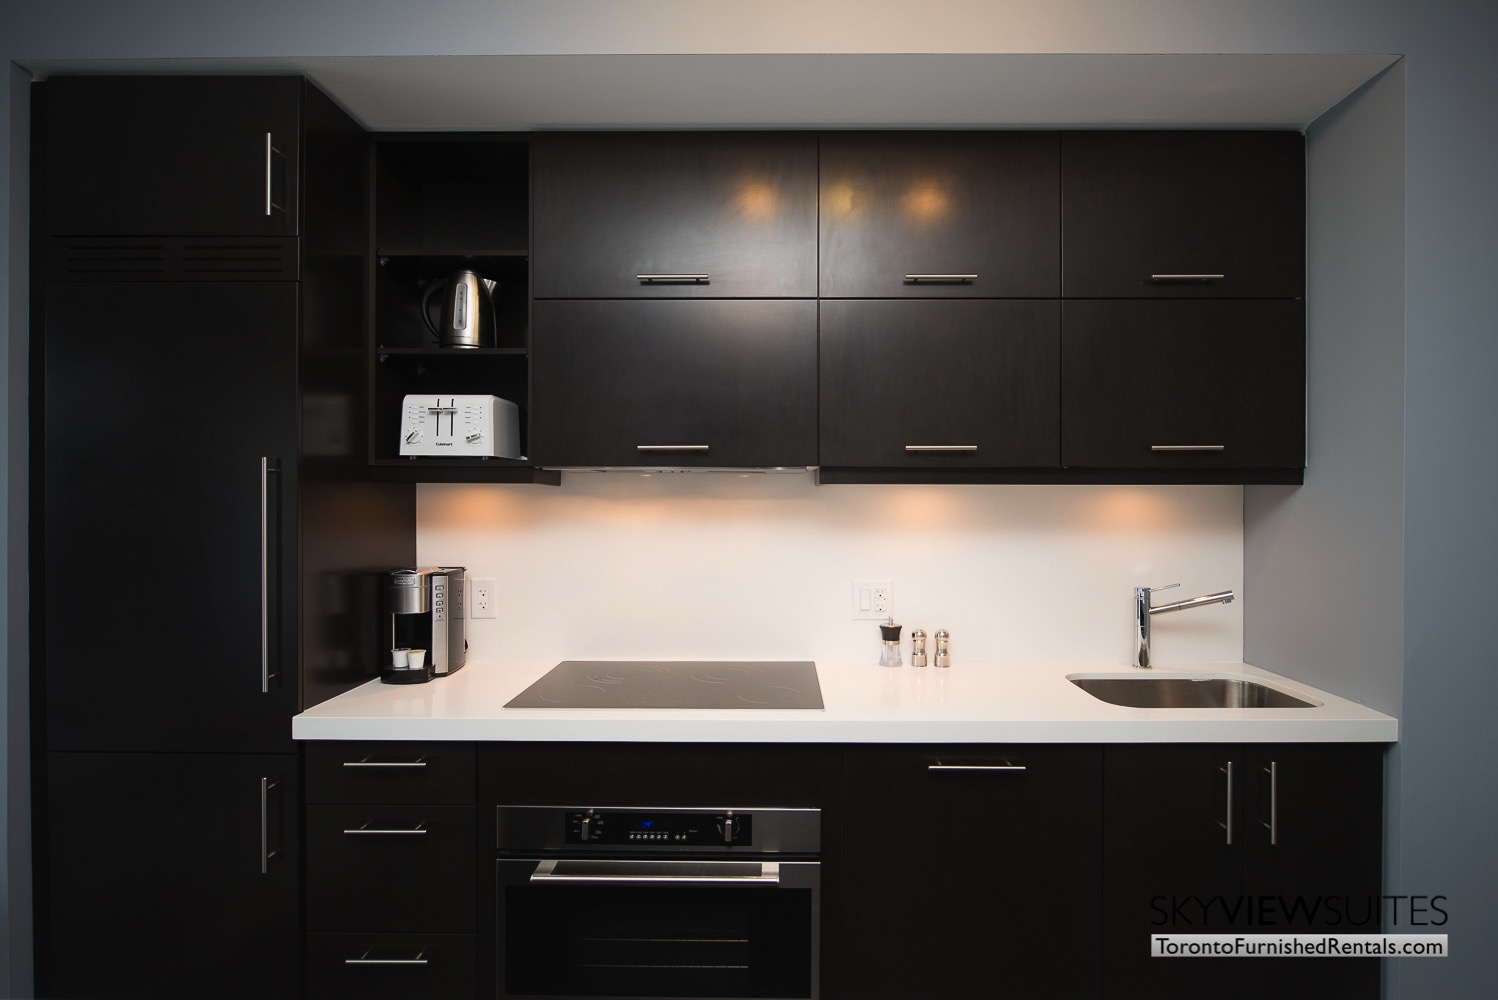 furnished apartments toronto Varsity kitchen